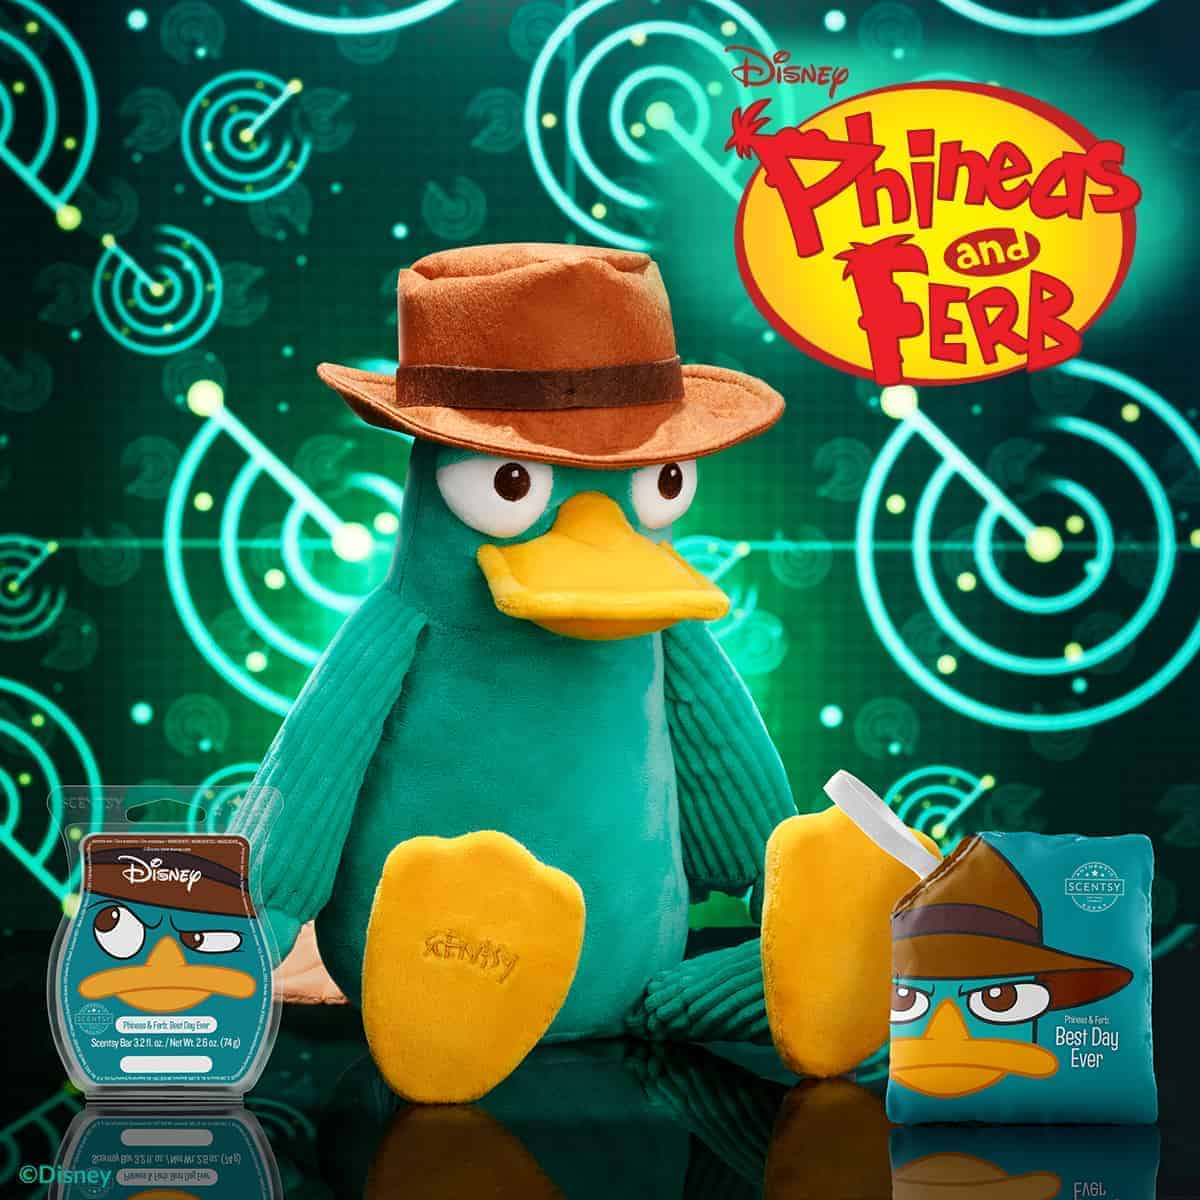 Perry the Platypus – Scentsy Buddy